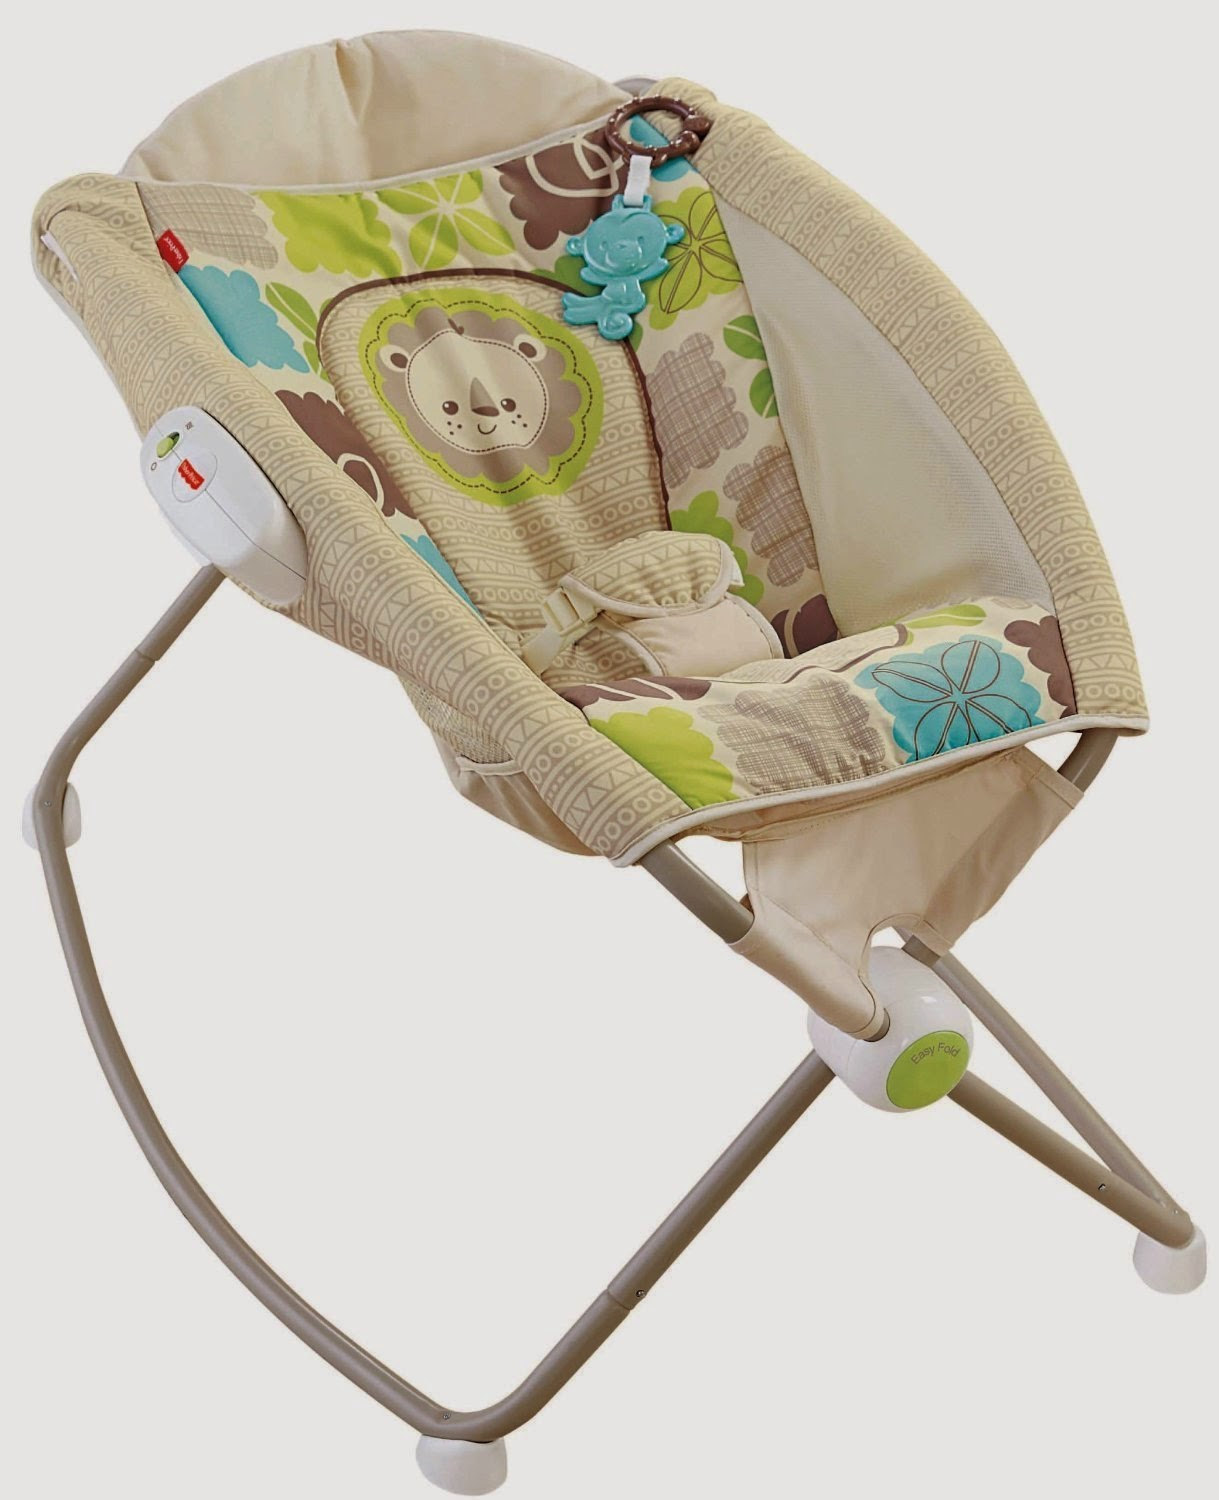 https://www.amazon.com/Fisher-Price-Newborn-Sleeper-Rainforest-Friends/dp/B00BUO4664/ref=as_li_ss_til?tag=soutsubusavi-20&linkCode=w01&creativeASIN=B00BUO4664